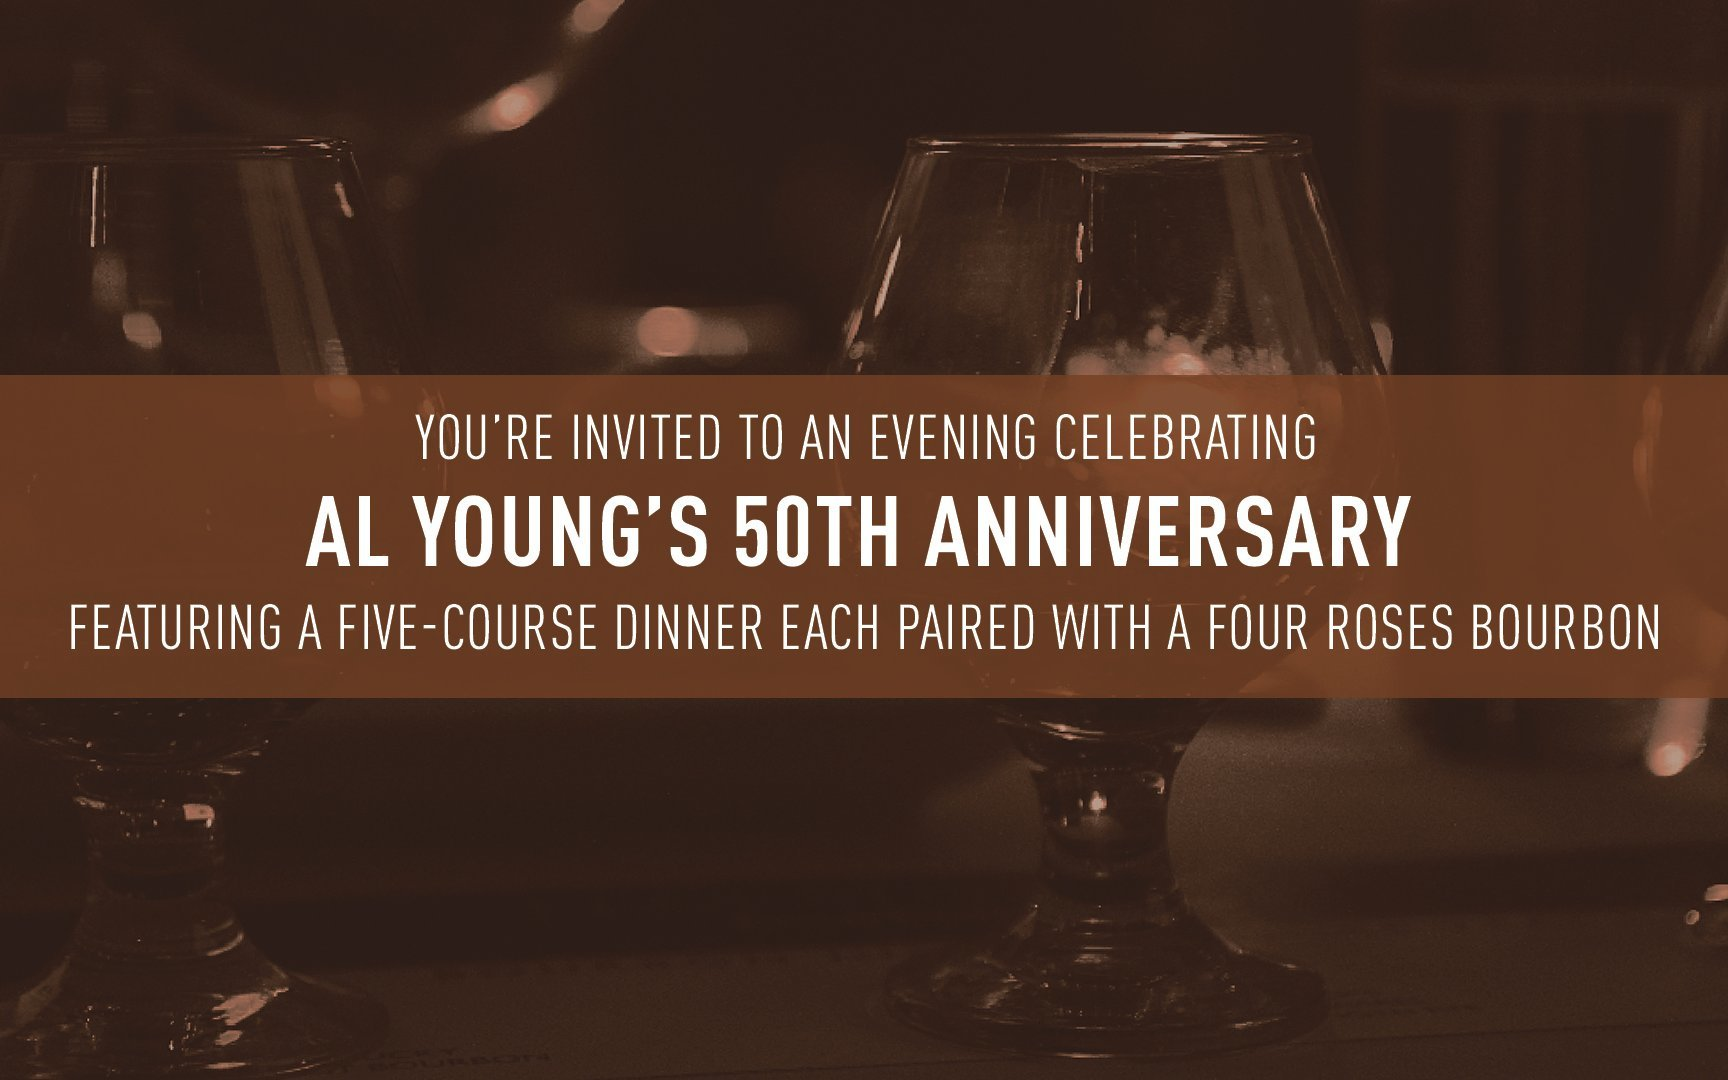 Kentucky Derby Museum and Four Roses Bourbon invite you to a 50th anniversary dinner honoring bourbon legend Al Young